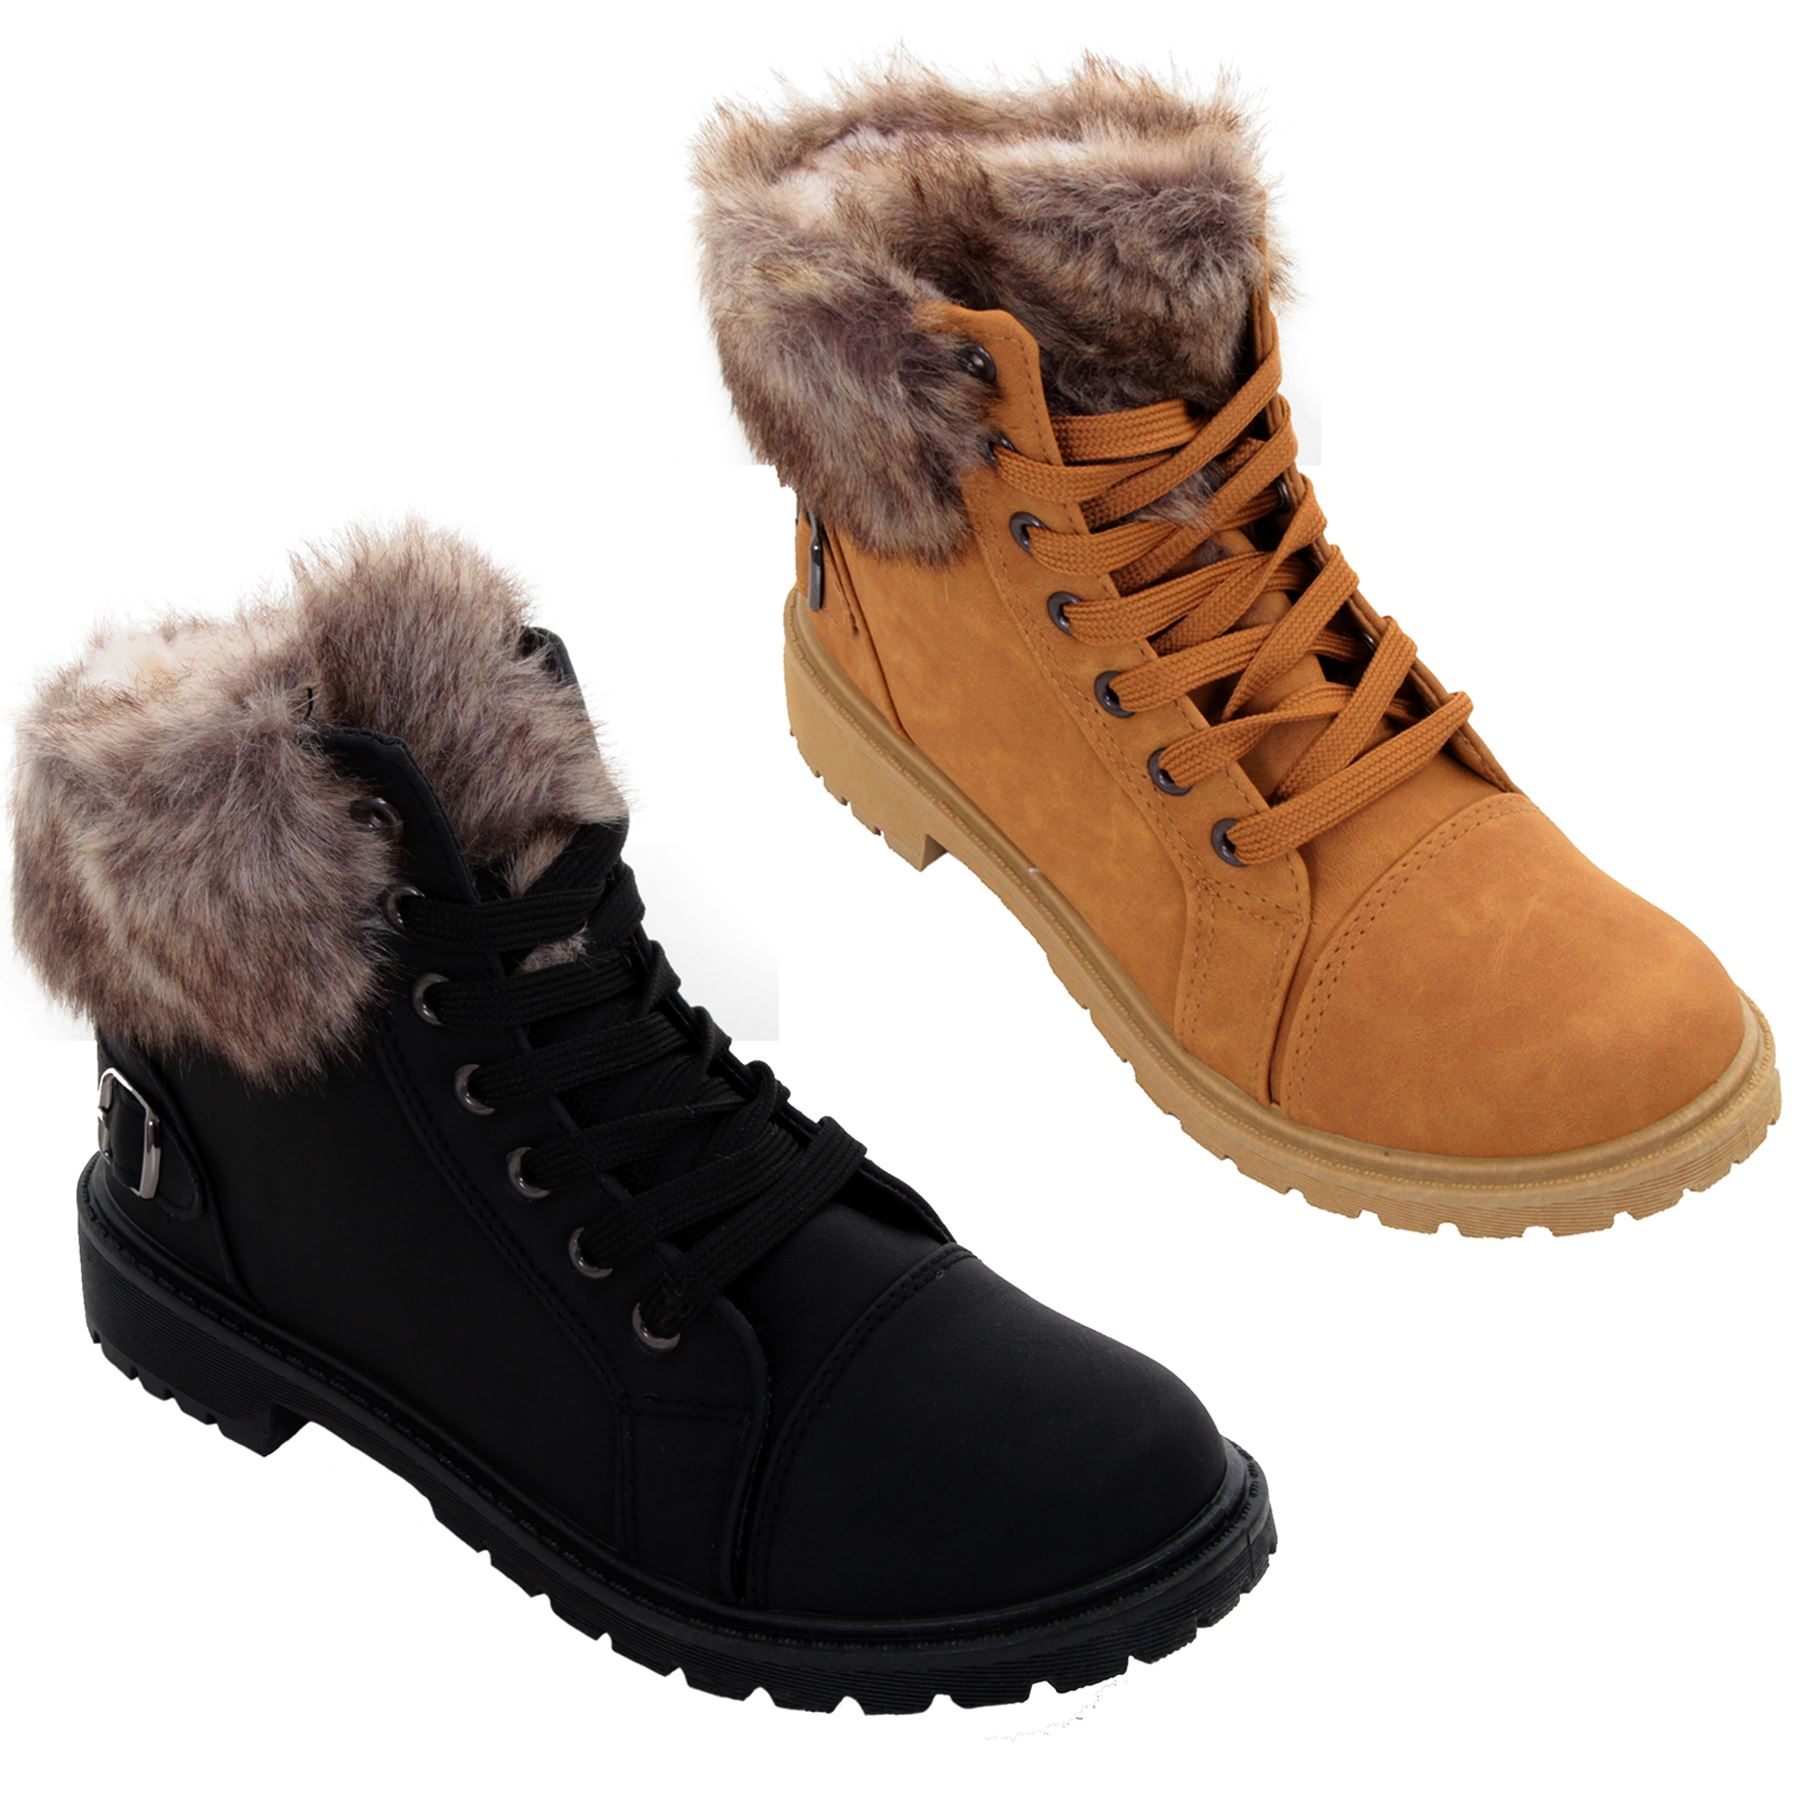 Womens Fur Lined Warm Winter Boots Ladies Ankle Strap Fastening Grip Sole Shoes